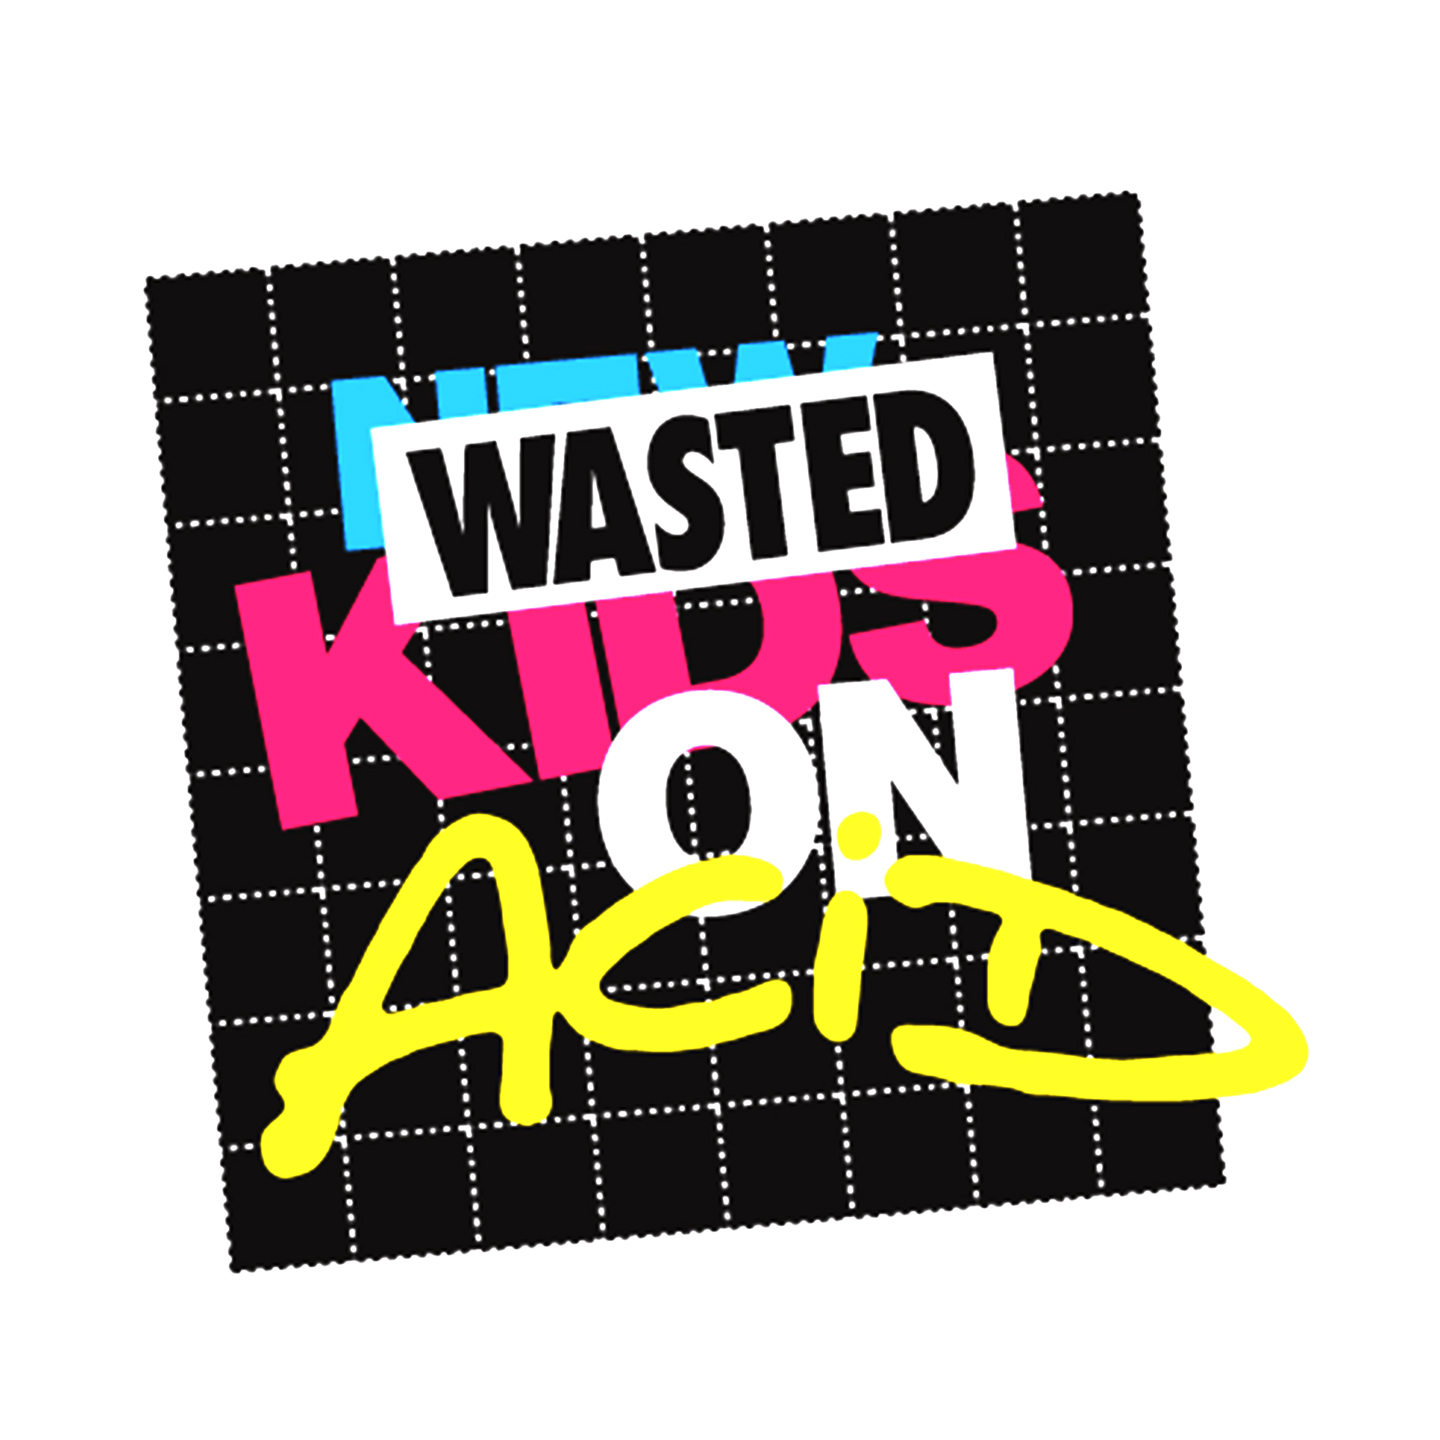 wasted-kids-on-acid.jpg